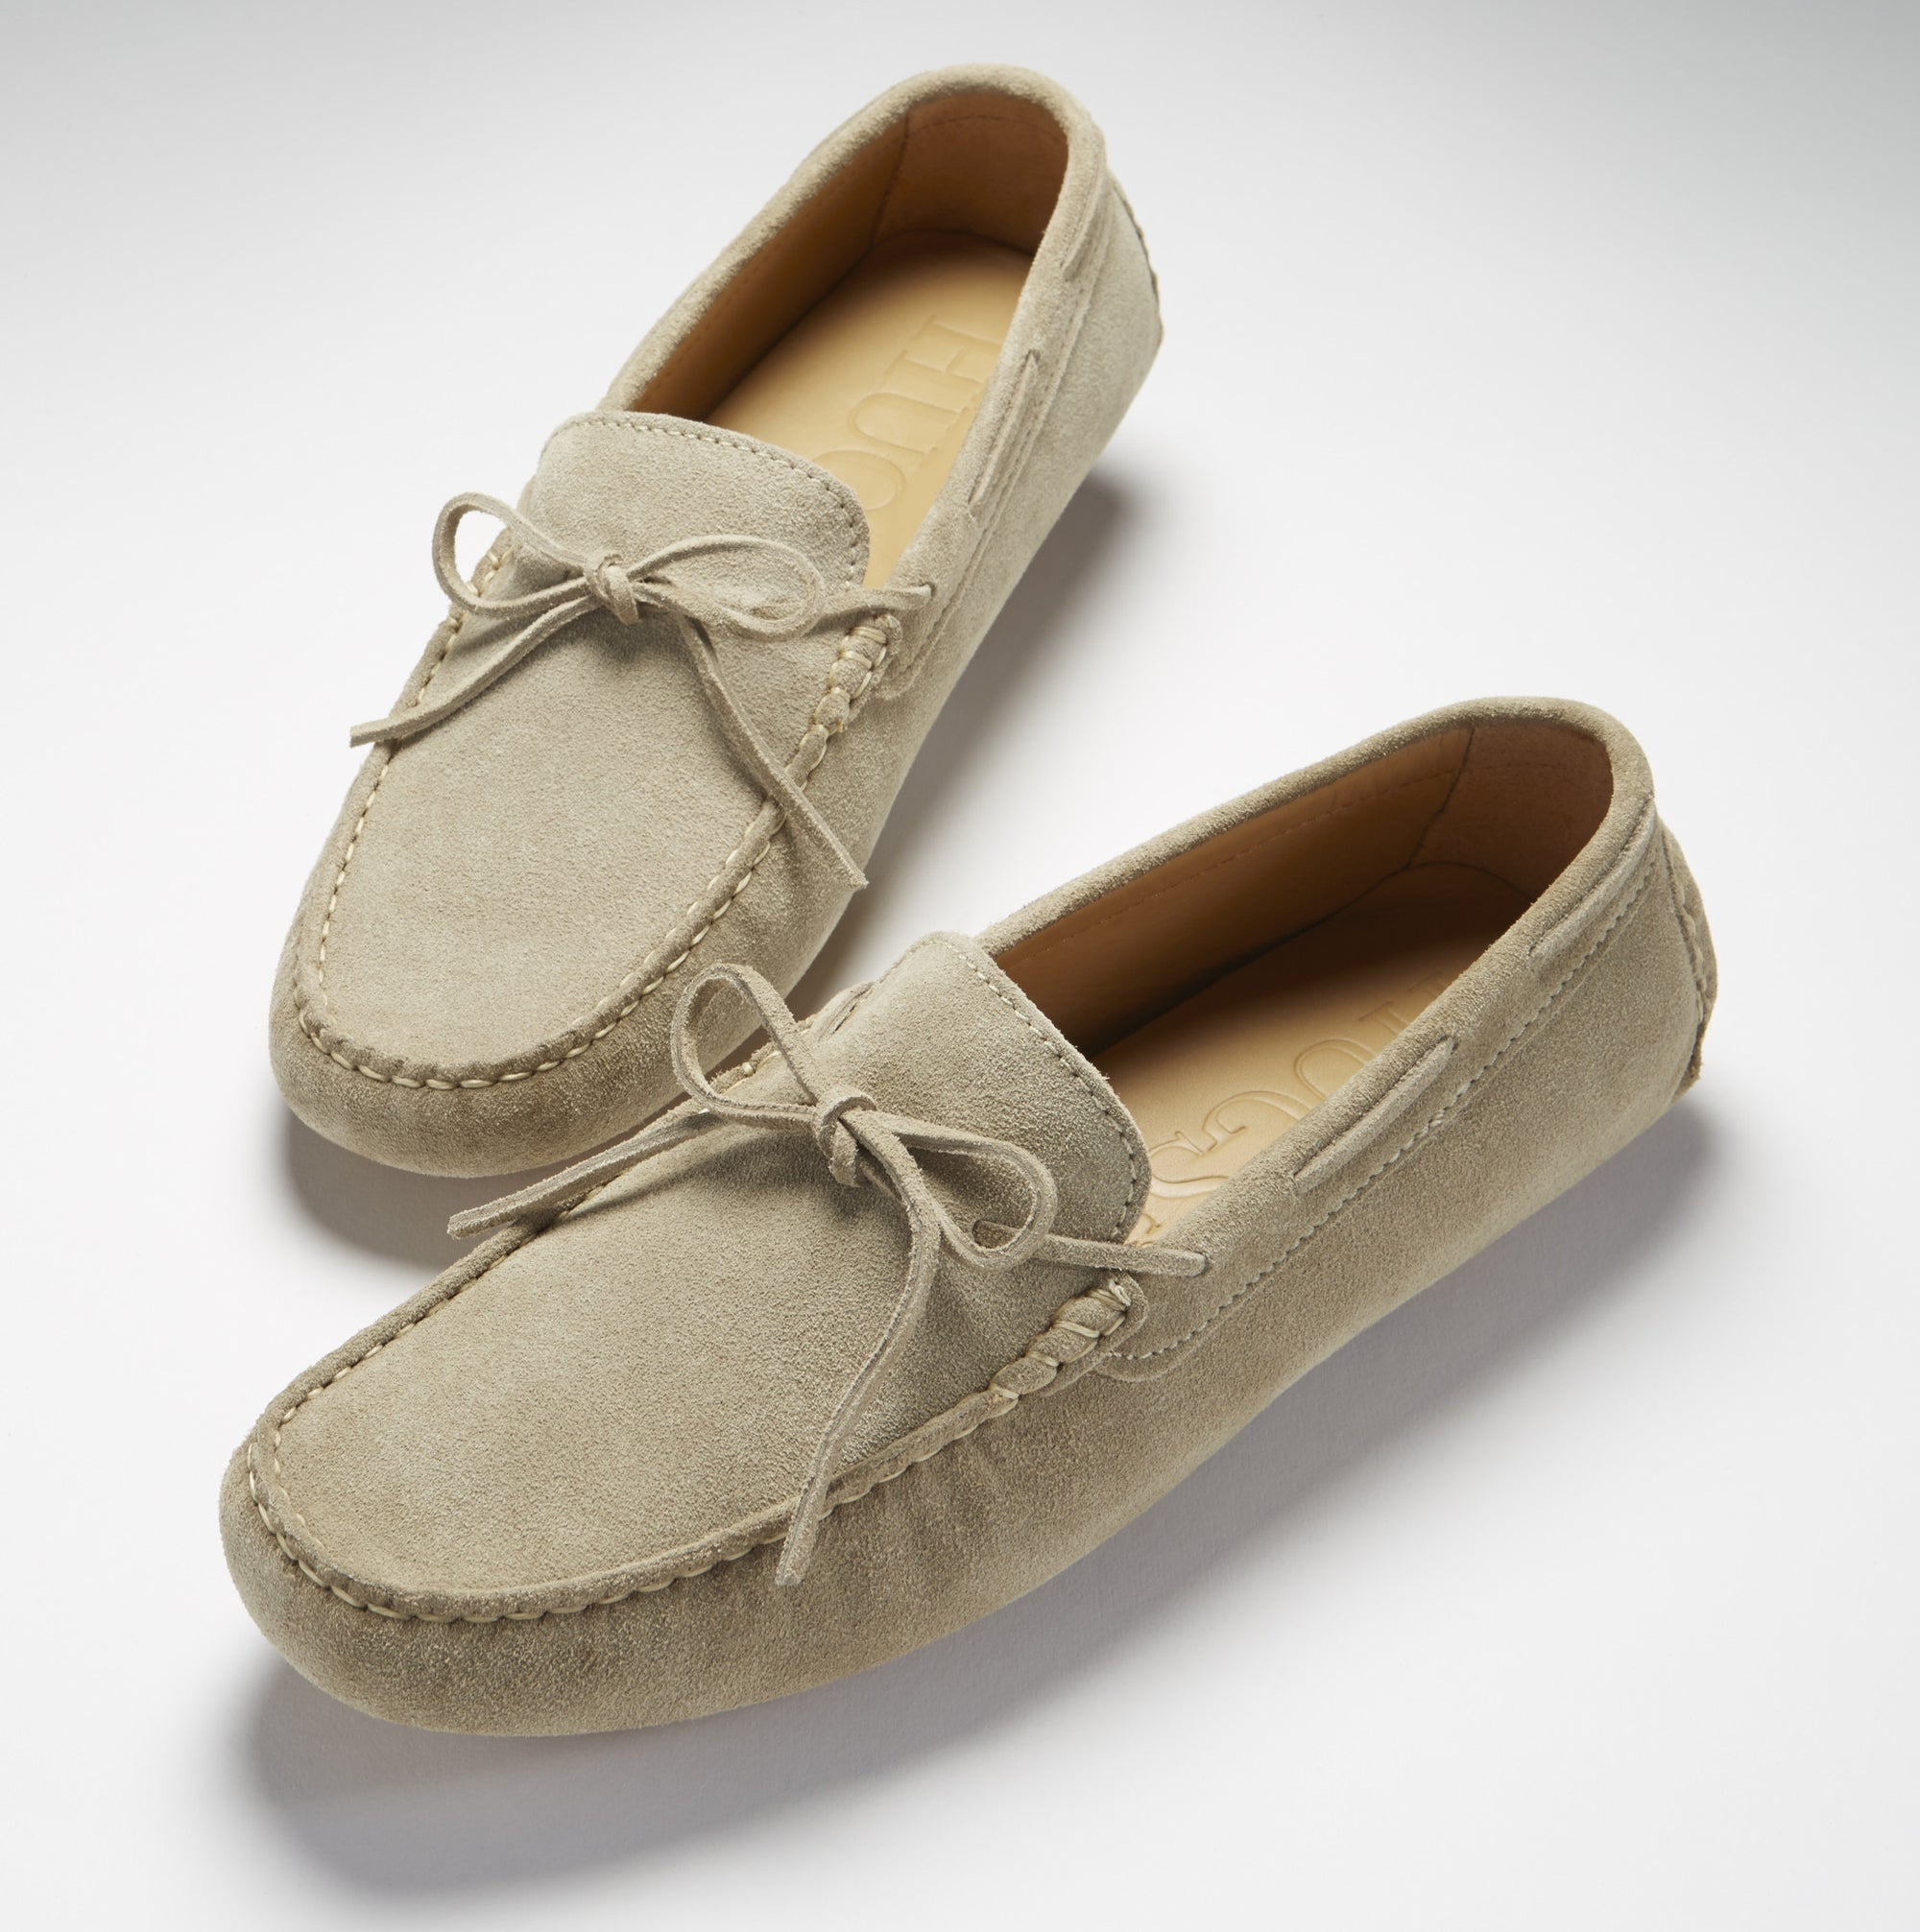 Laced Driving Loafers, sand suede